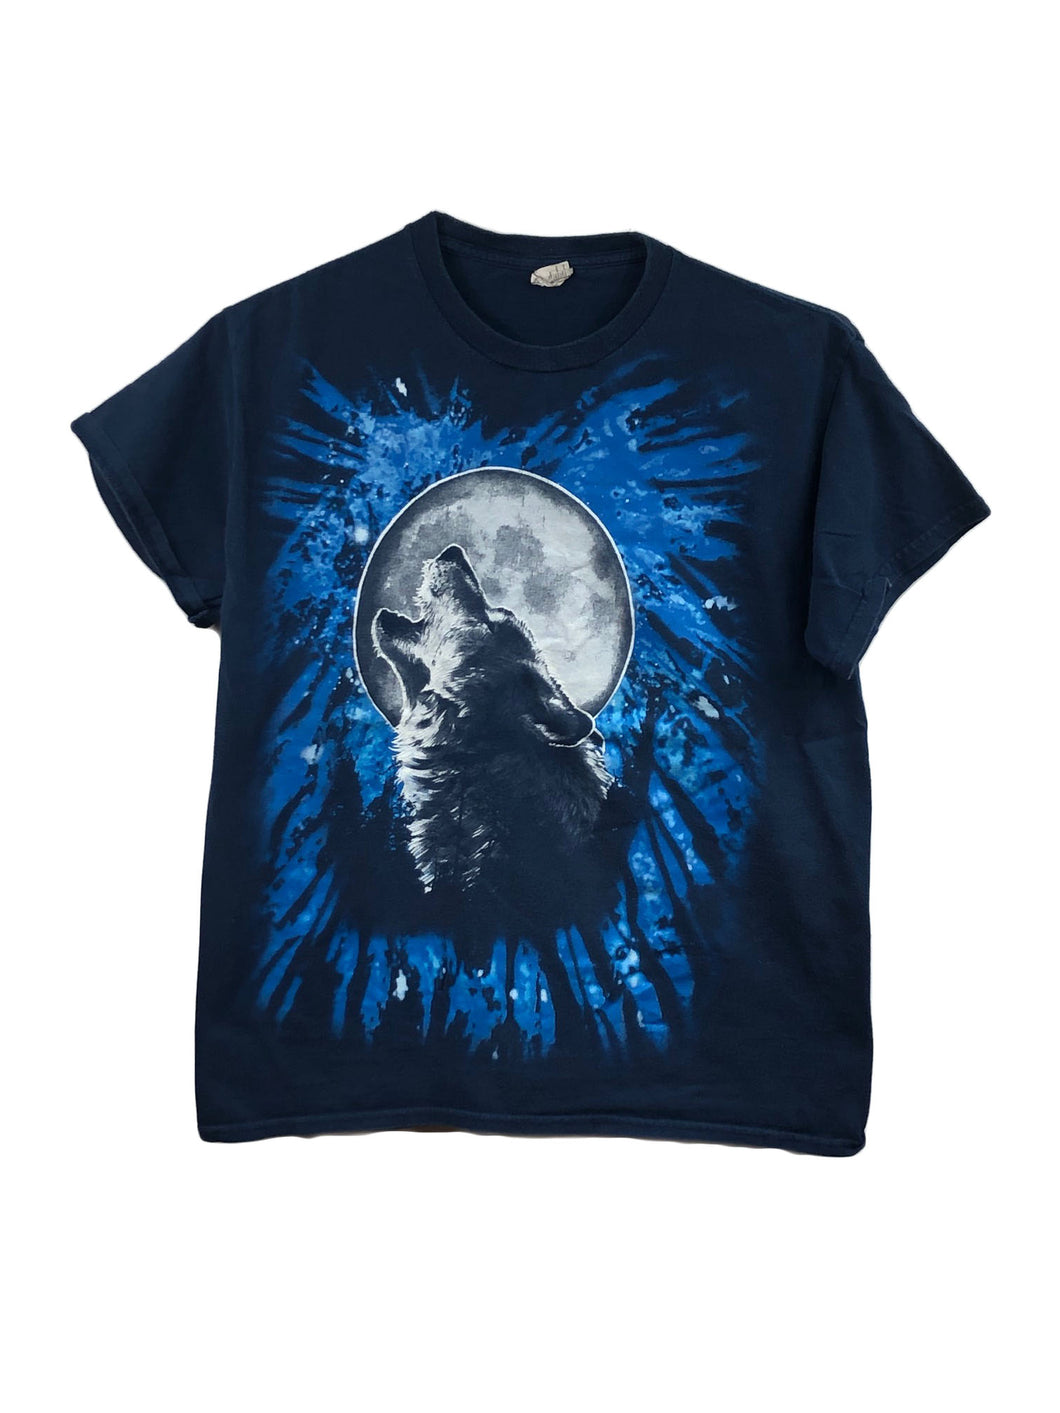 Howling at The Moon Tee